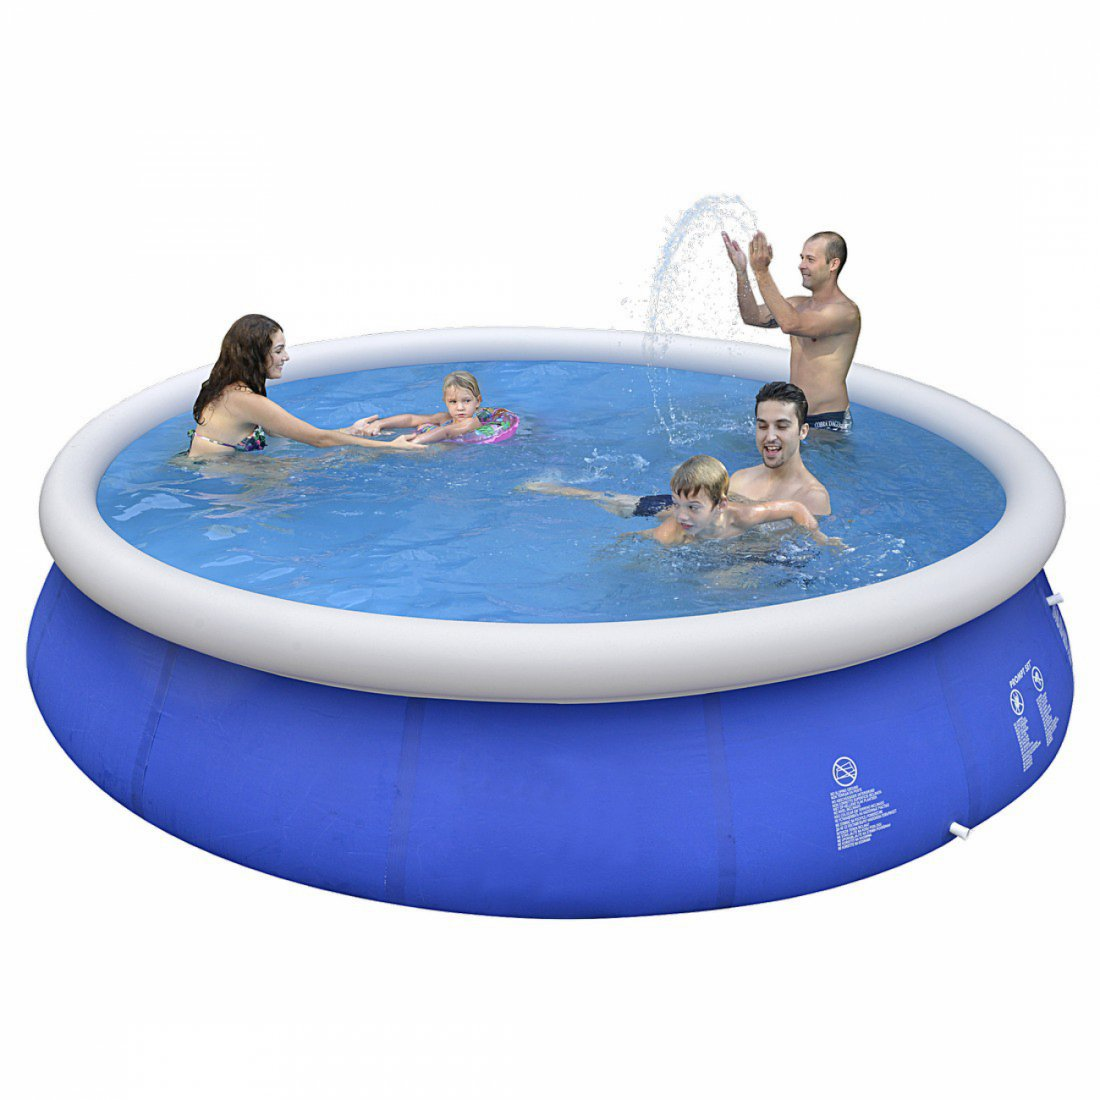 Comprare jilong marin blue 420 piscina quick up vasca for Piscine on line